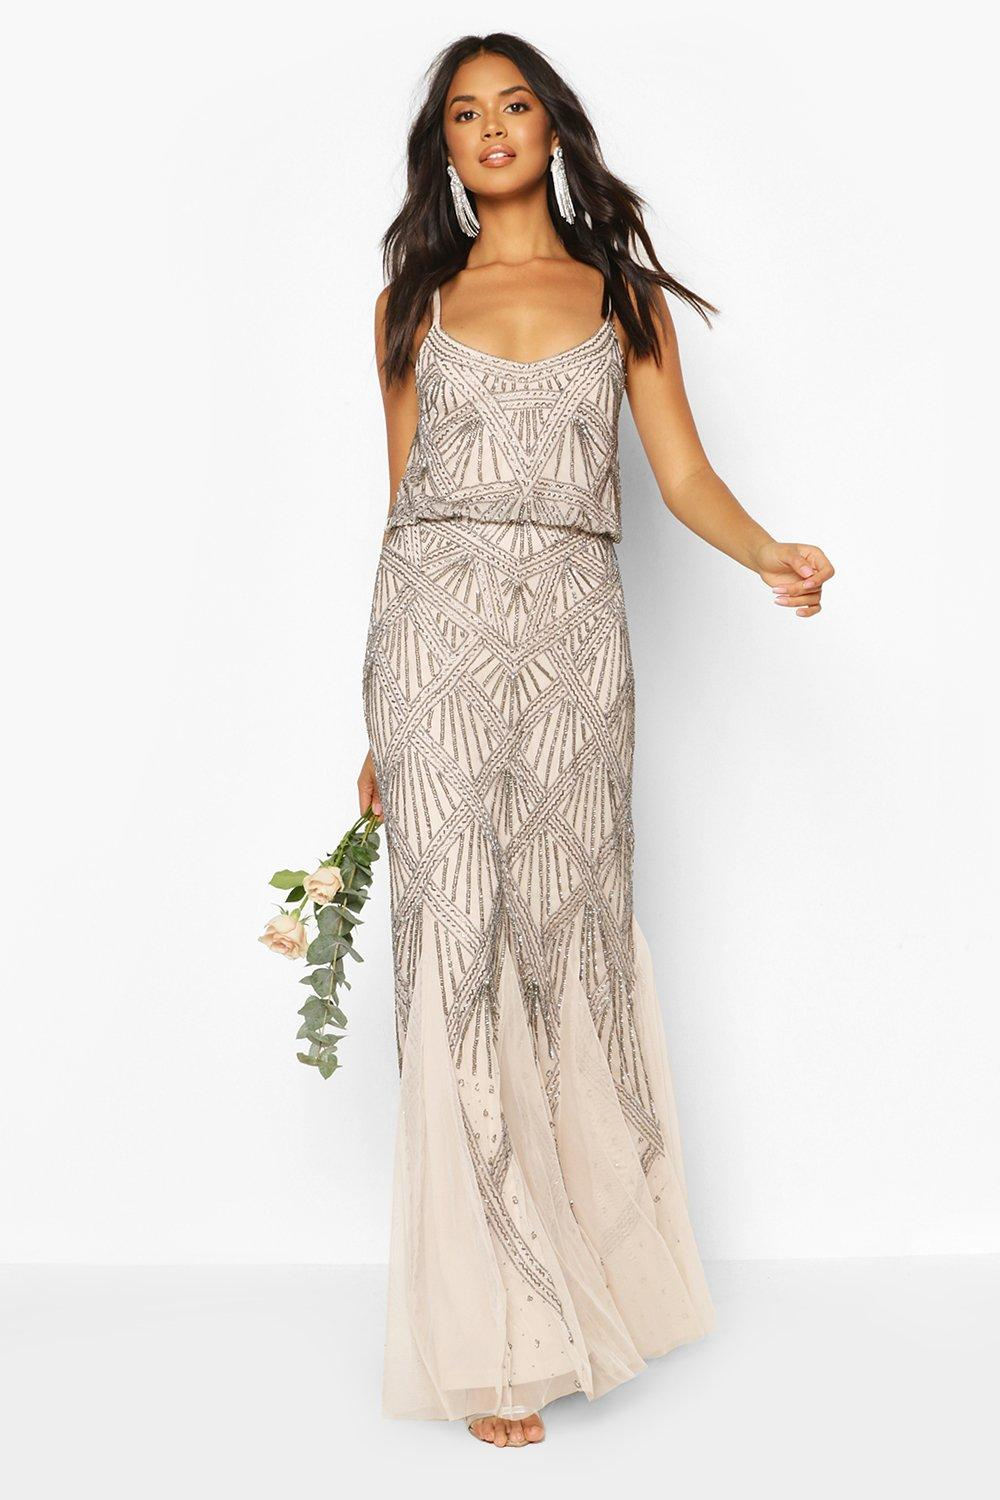 Flapper Outfit: How to Dress Like a 20s Flapper Girl Womens Bridesmaid Strappy Hand Embellished Godet Maxi - Beige - 14 $96.00 AT vintagedancer.com